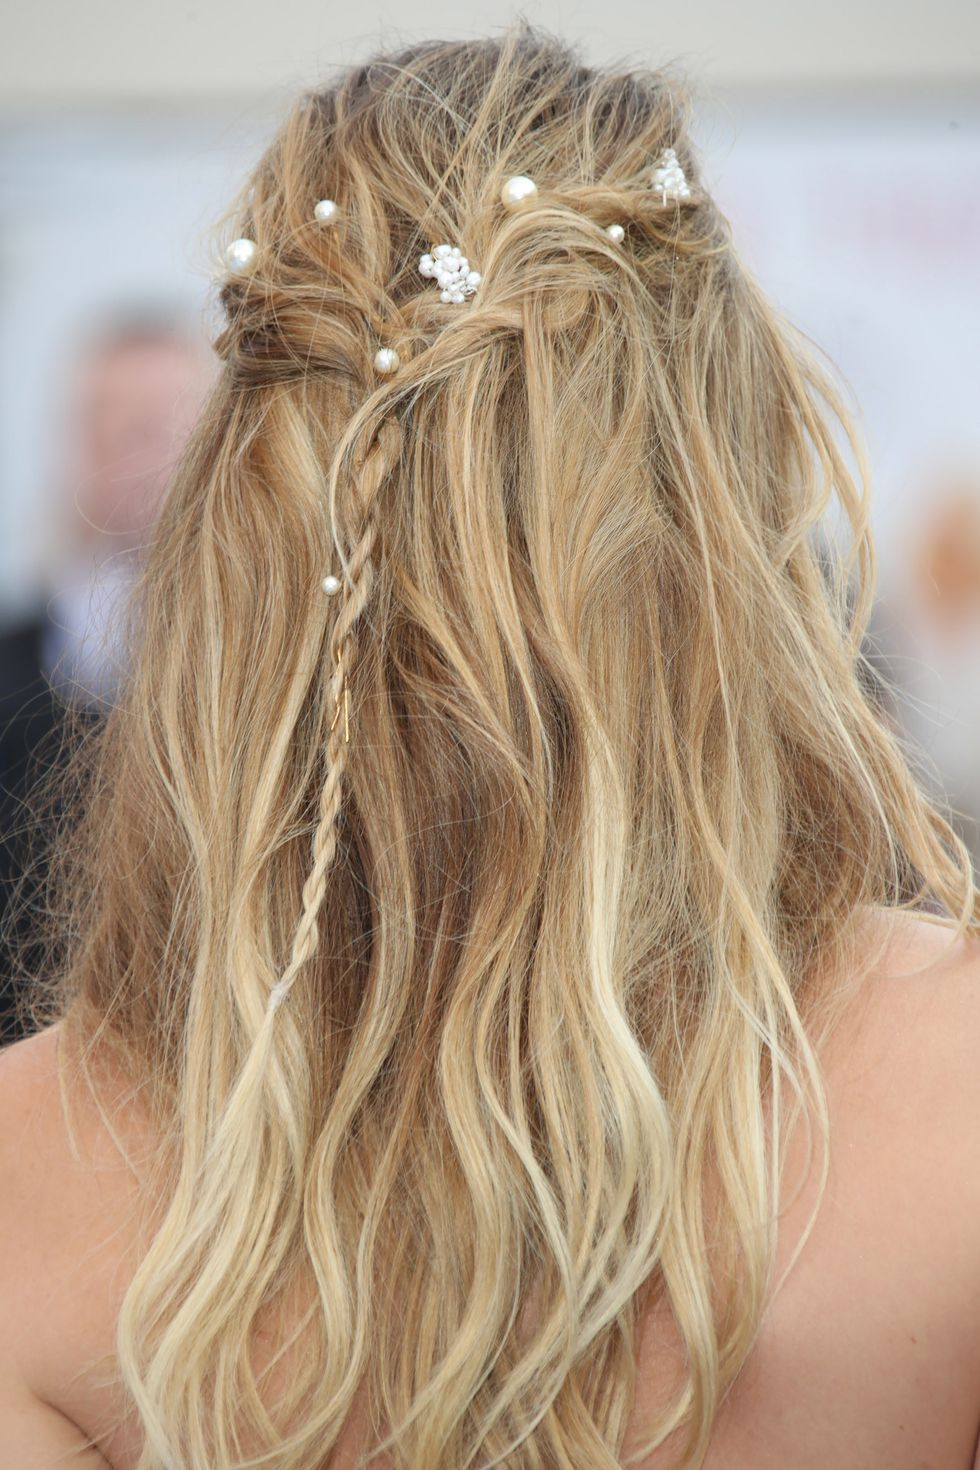 26 Grown Up Ways To Style Long Hair Ideas For Styling Long Hair